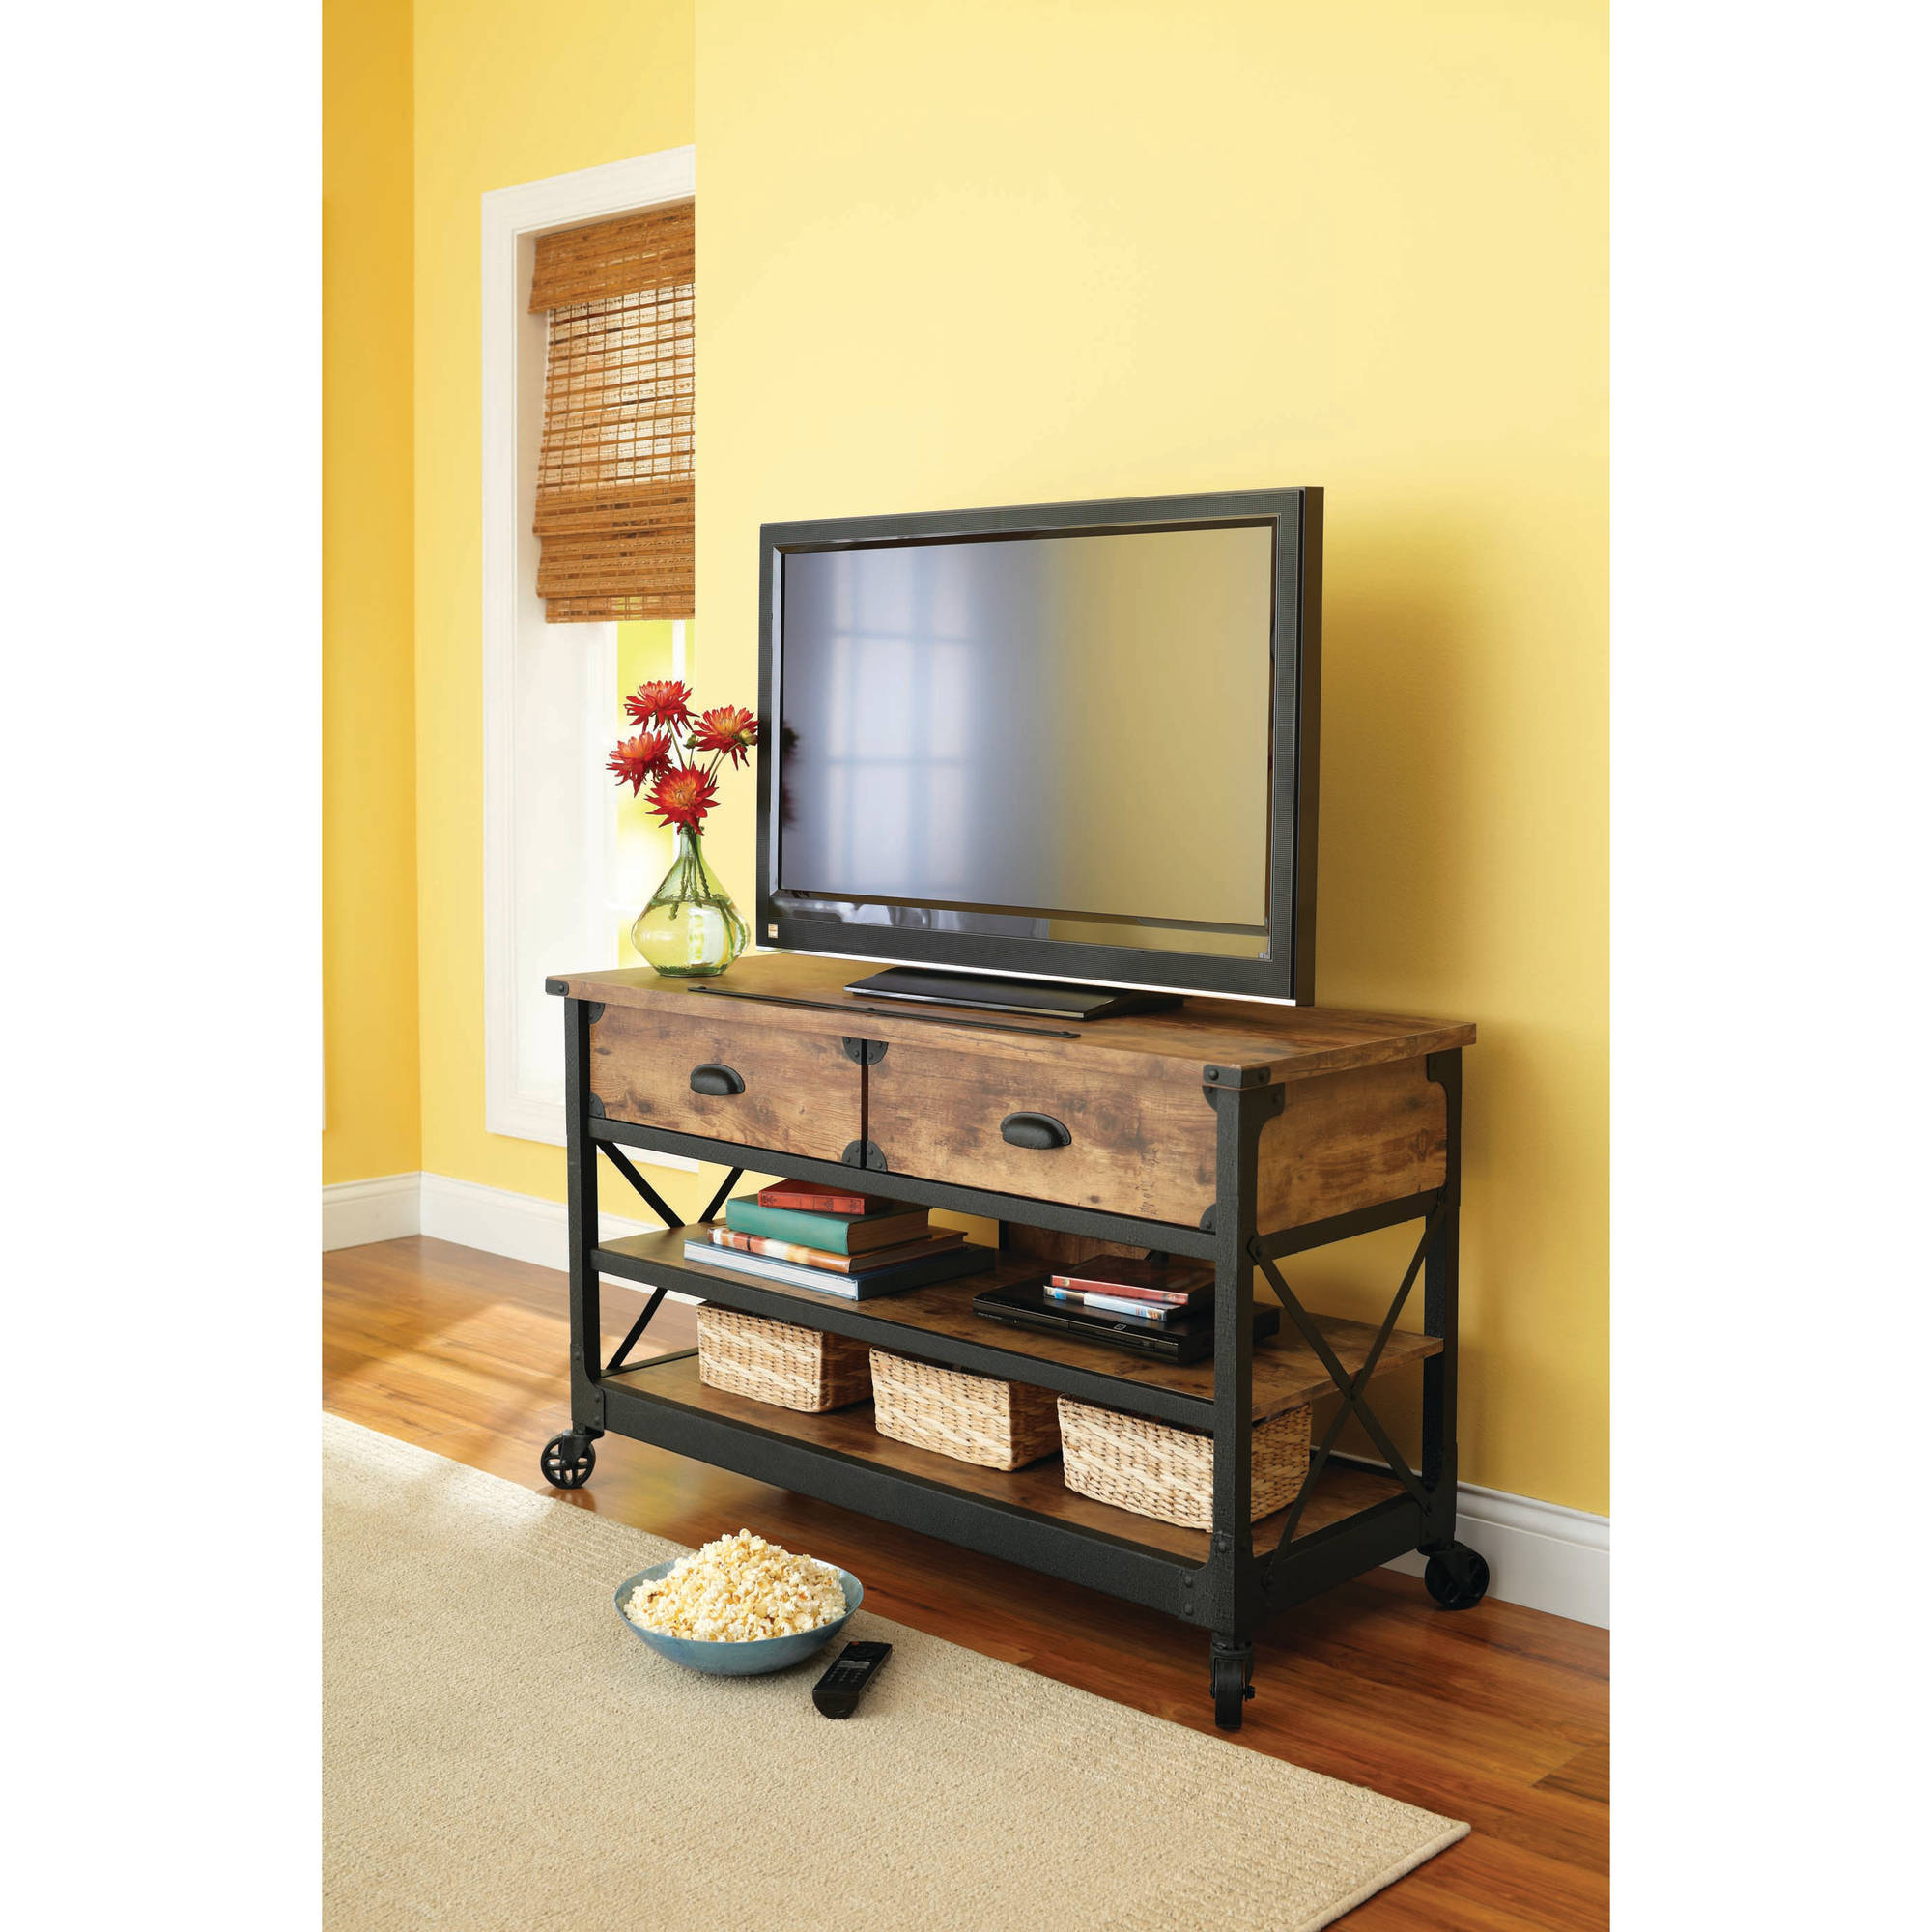 Wooden Tv Stand With Wheels Regarding Most Current Better Homes & Gardens Rustic Country Tv Stand For Tvs Up To  (View 18 of 20)